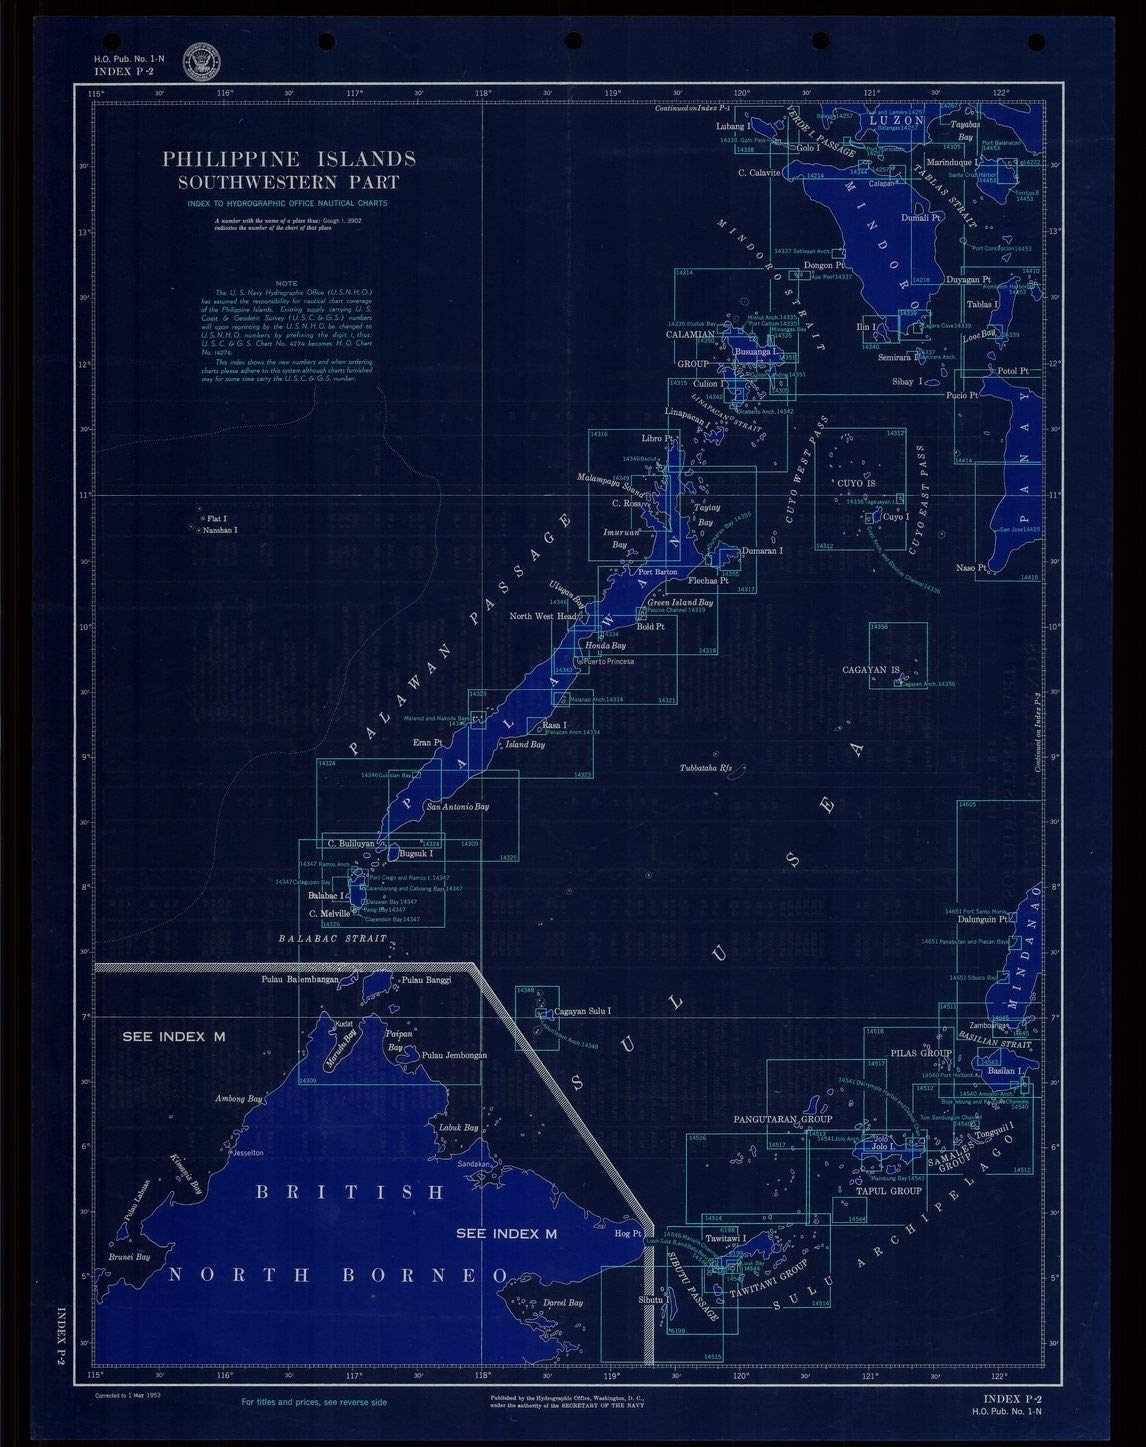 Blueprint Style 18 x 24 Reprint of 1953 Nautical Chart-Index Philippine Islands Southwestern Part by Hydrographic Office of The United States Navy PH